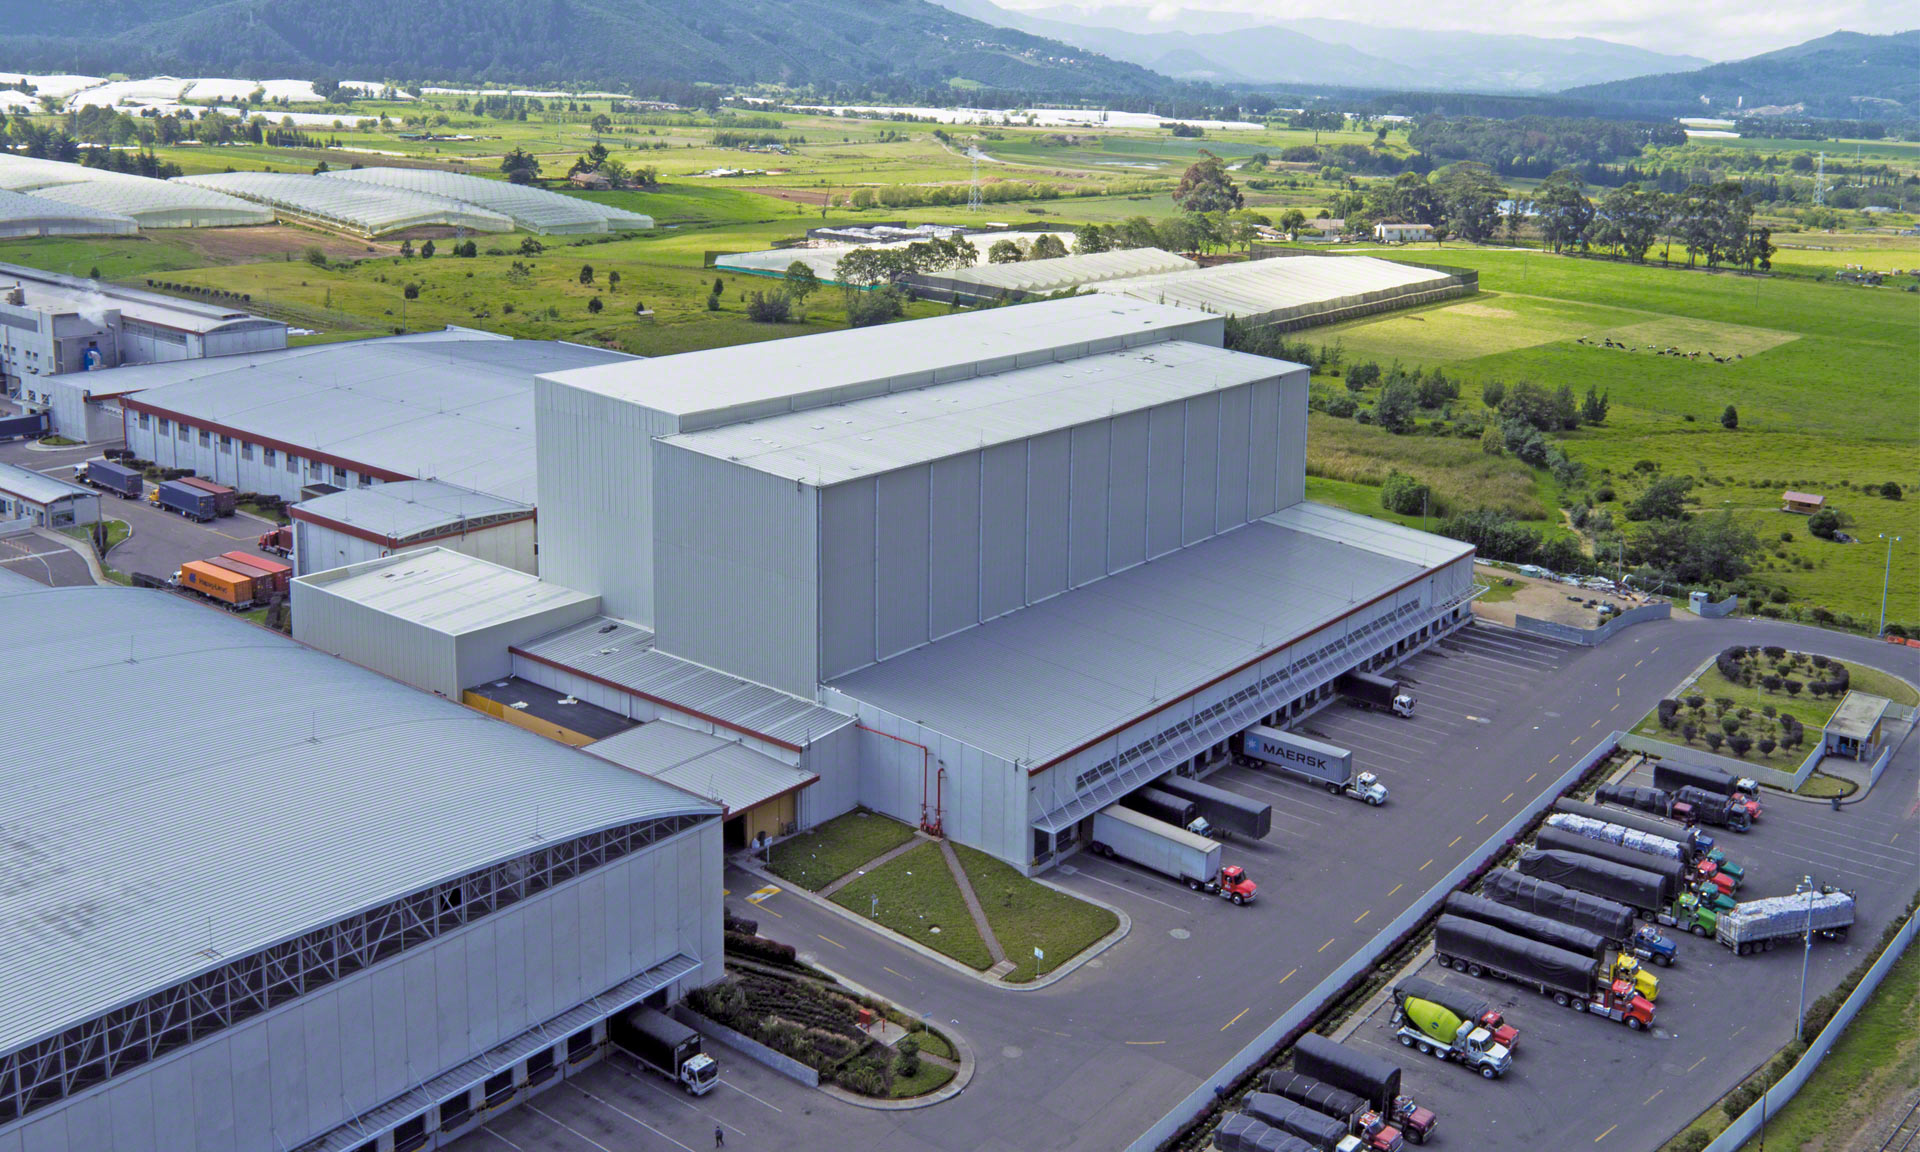 Grupo Familia has a 35 m high automated clad-rack warehouse capable of handling around 17,000 pallets